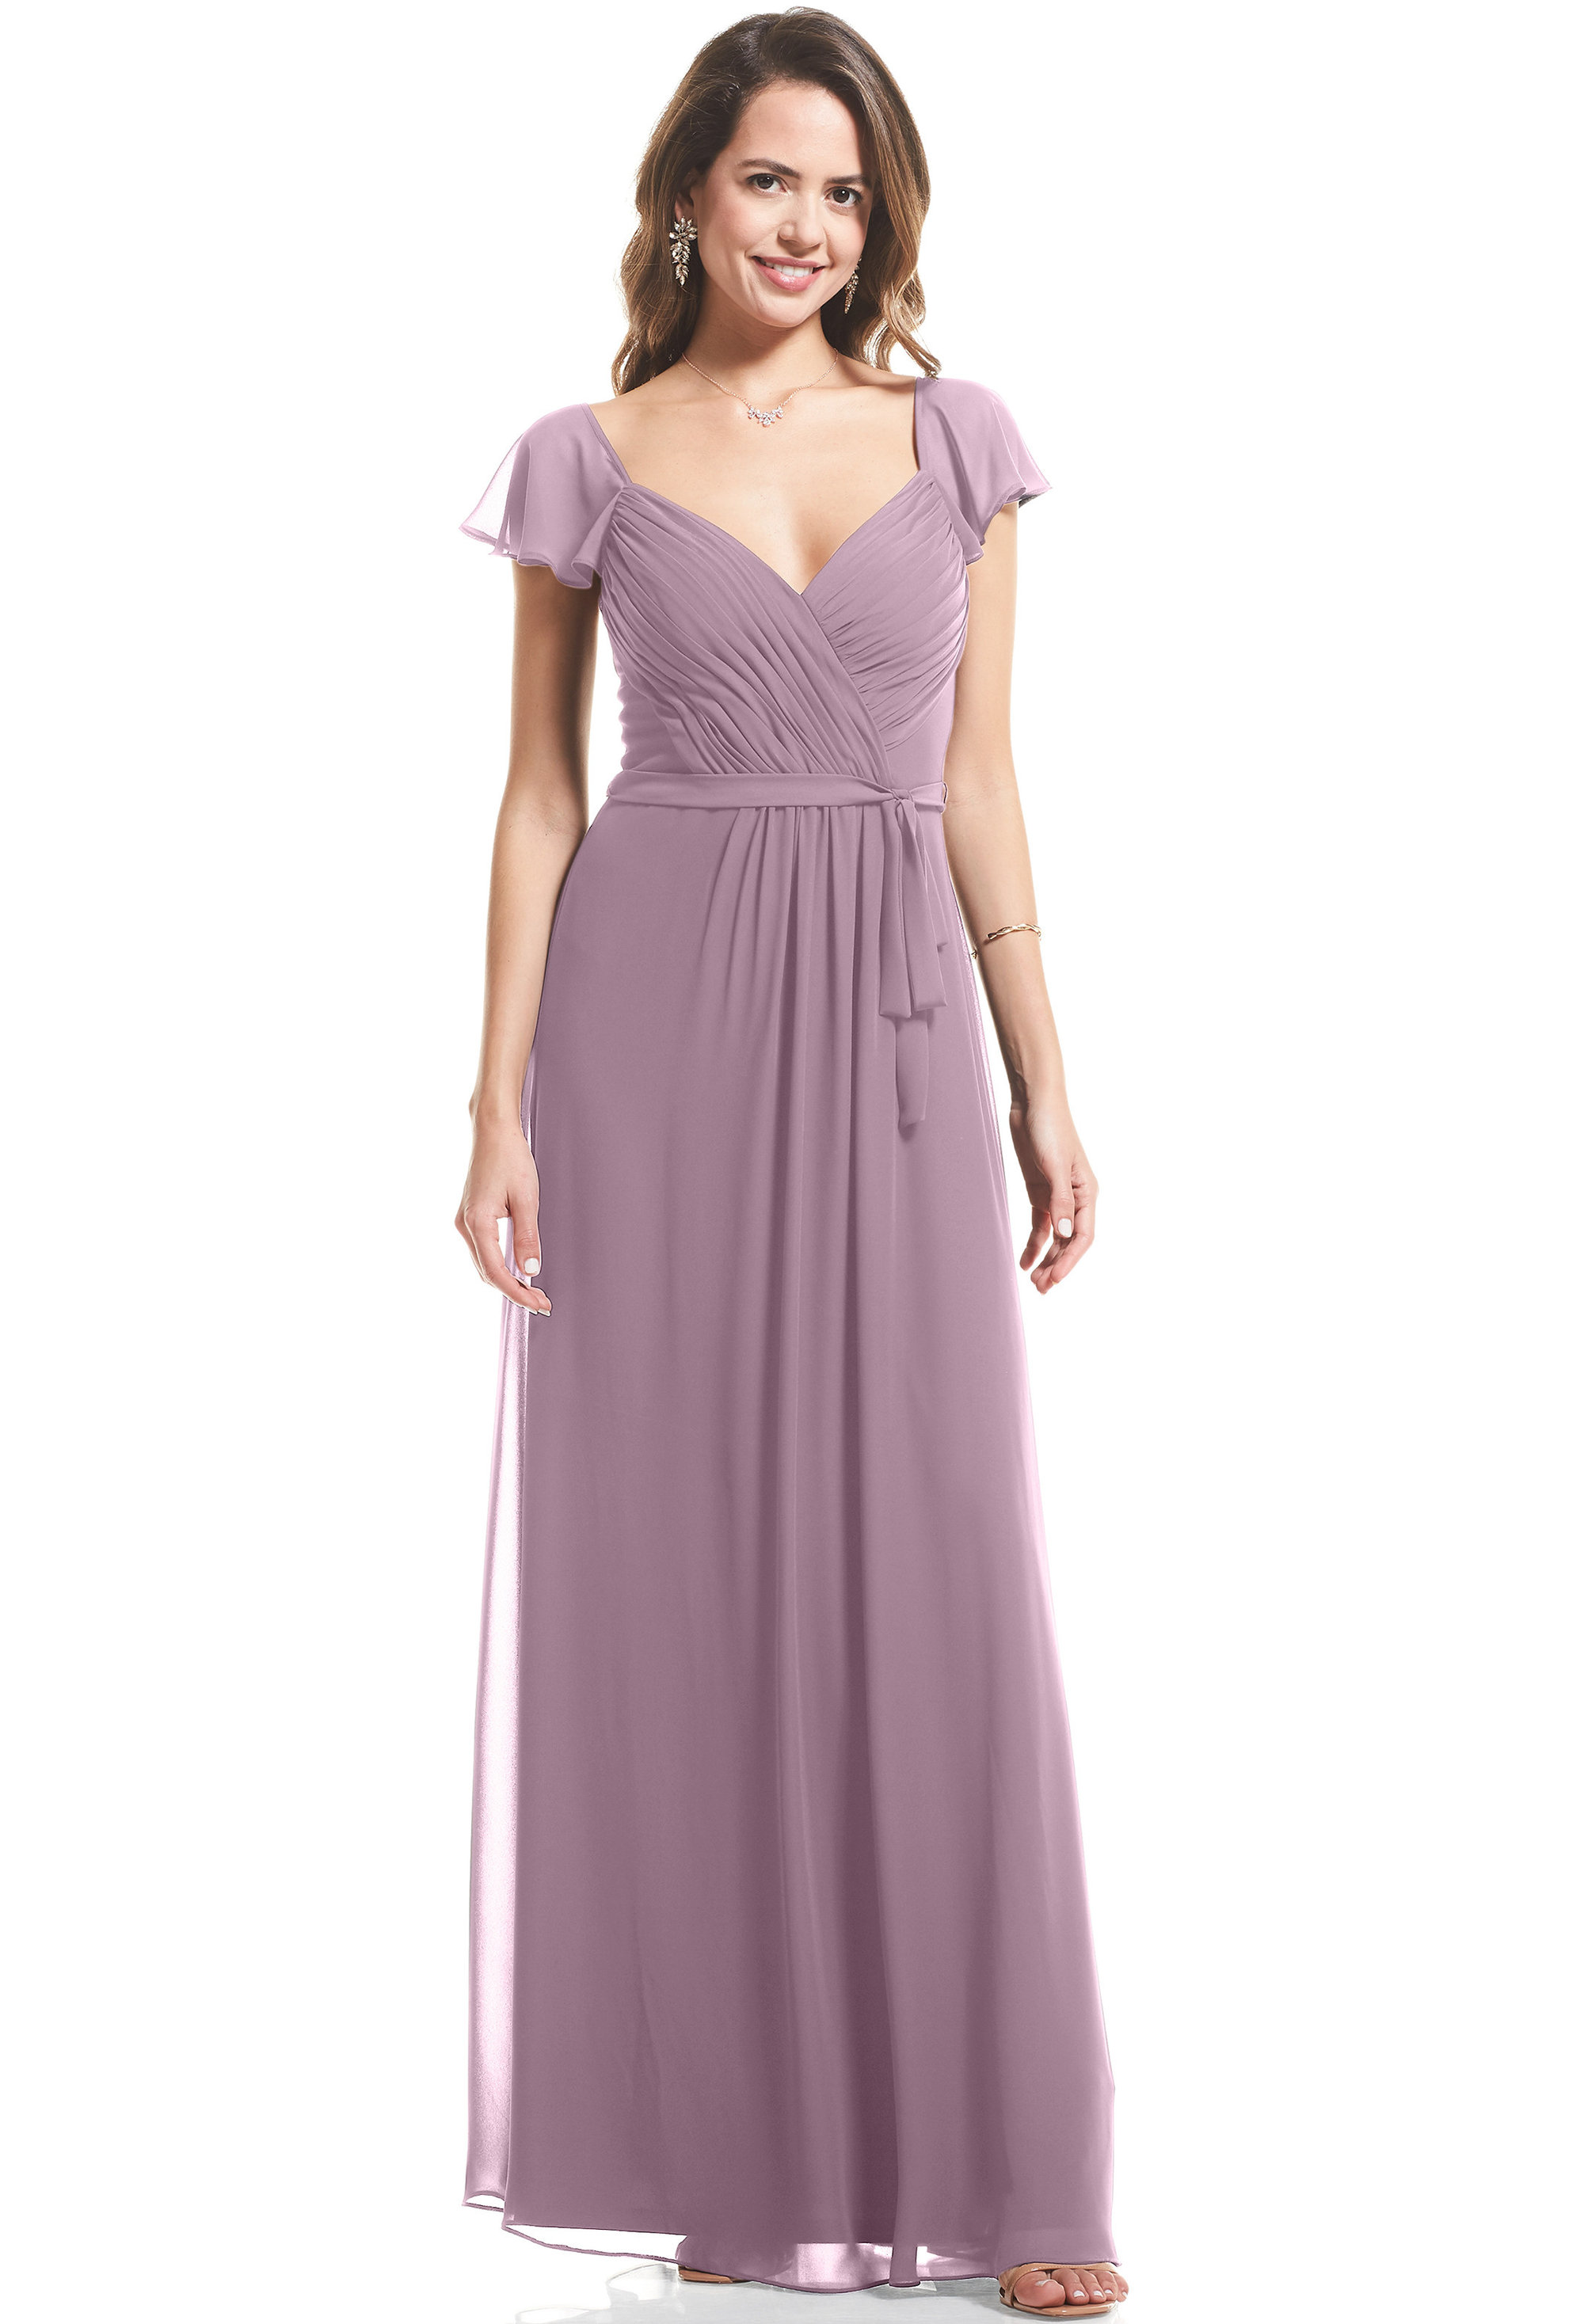 Bill Levkoff HEATHER Chiffon Cap Sleeve A-Line gown, $89.00 Front